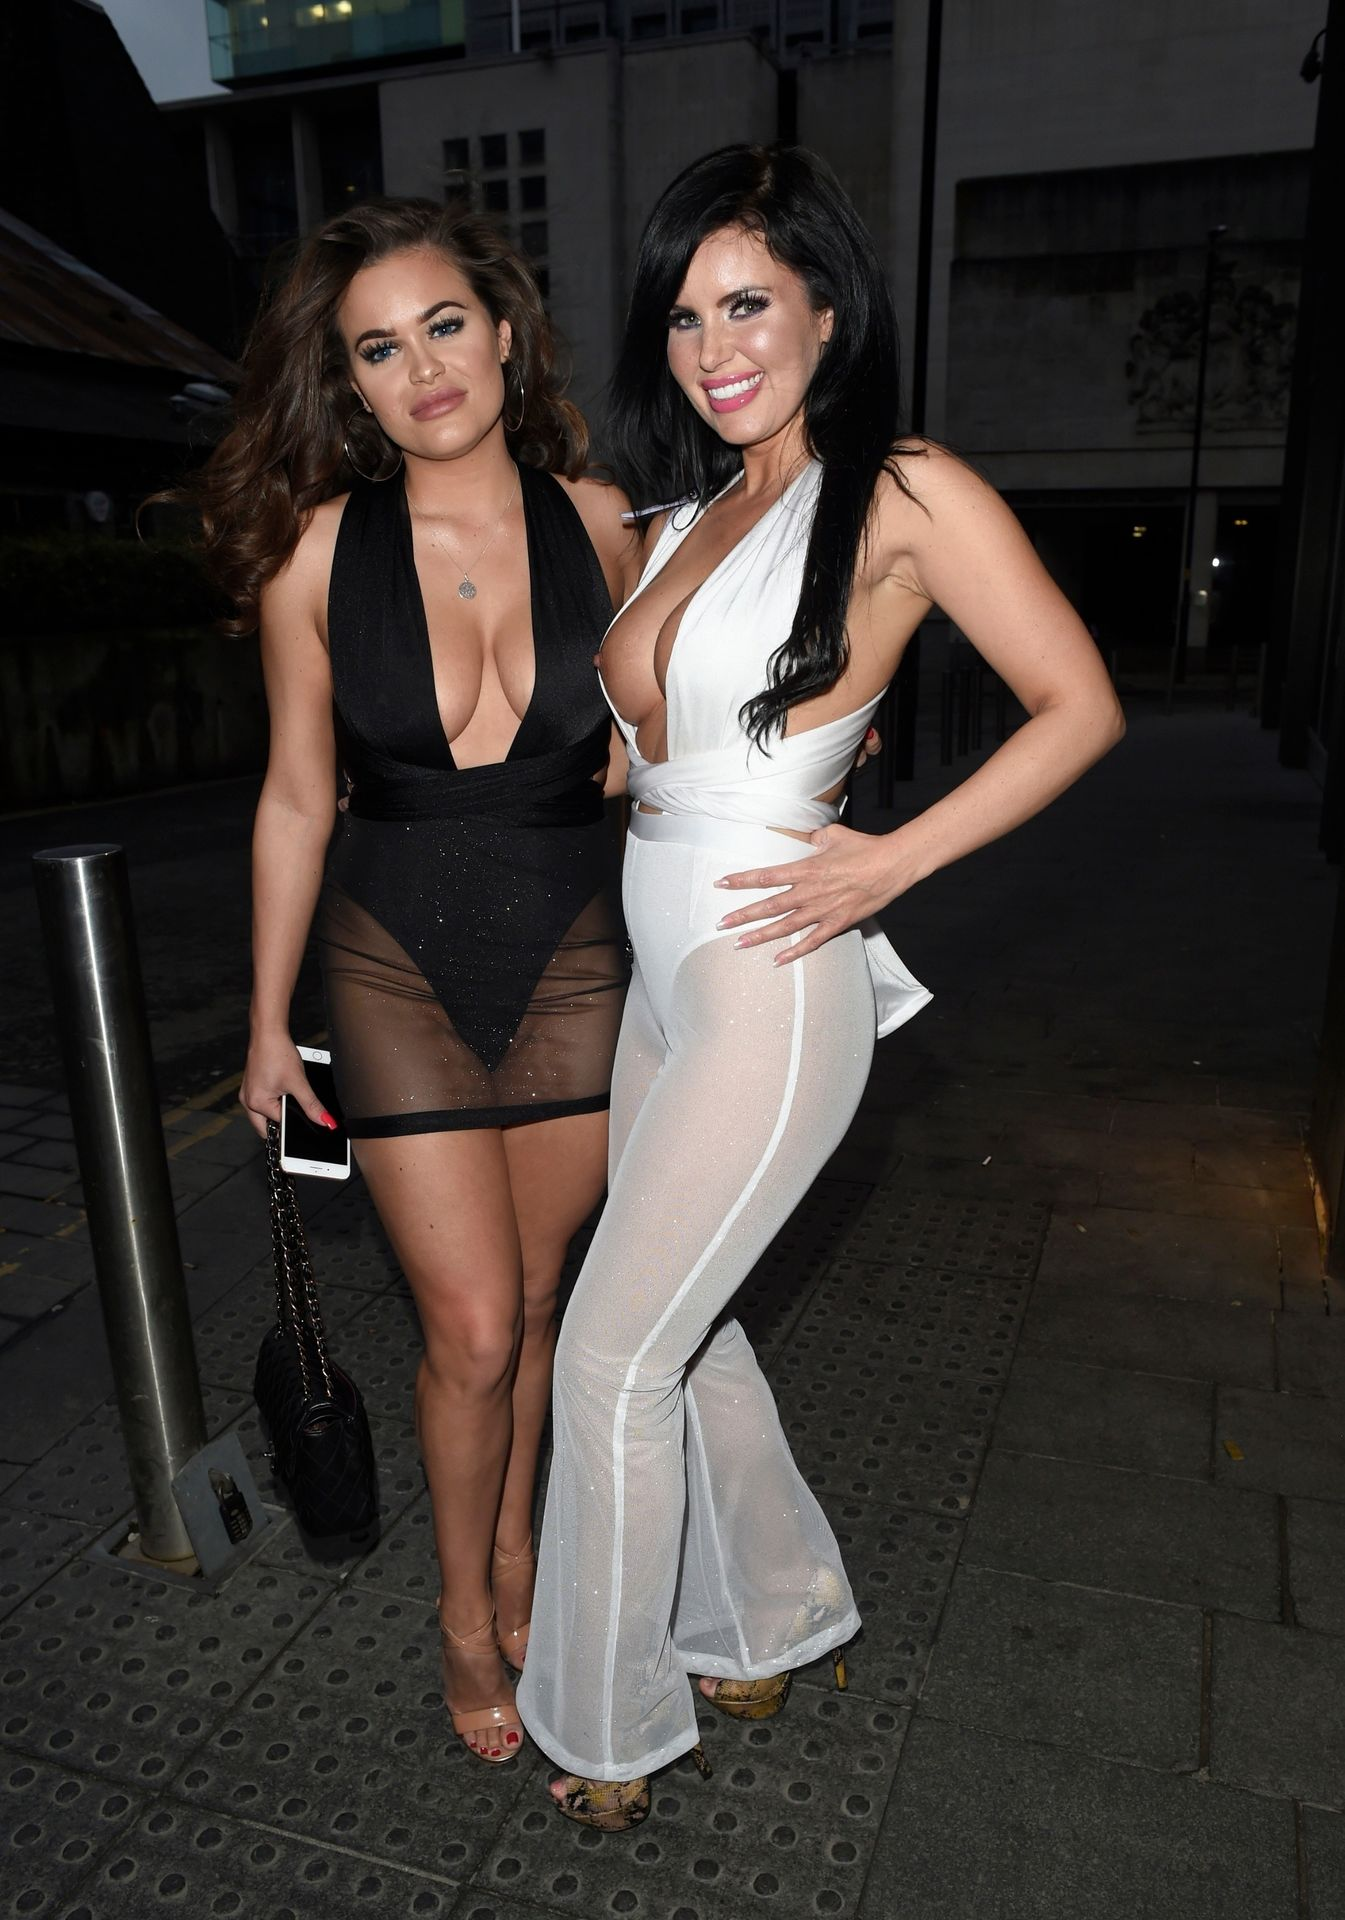 Rhianne Saxby & Sarah Longbottom Look Hot In Manchester 0008